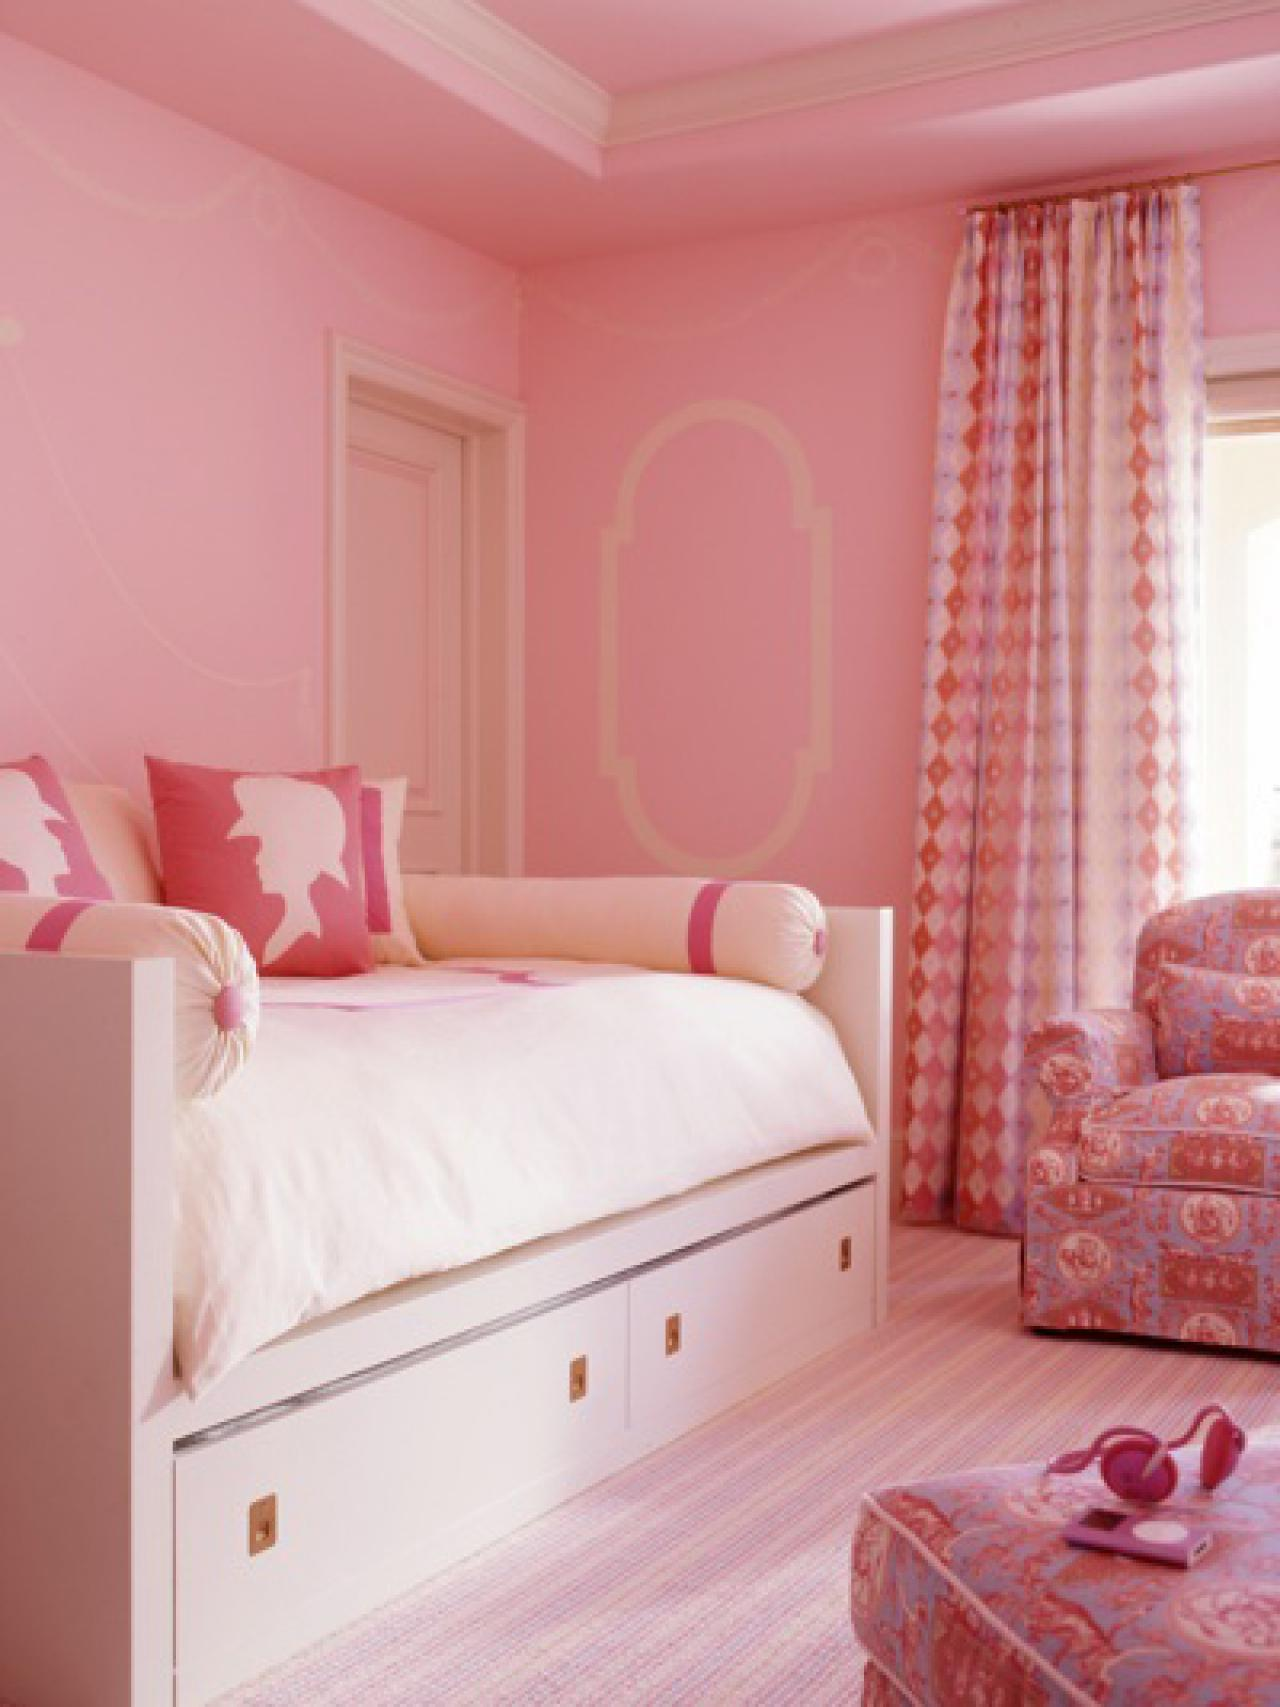 Pink bedroom paint colors - Tone On Tone